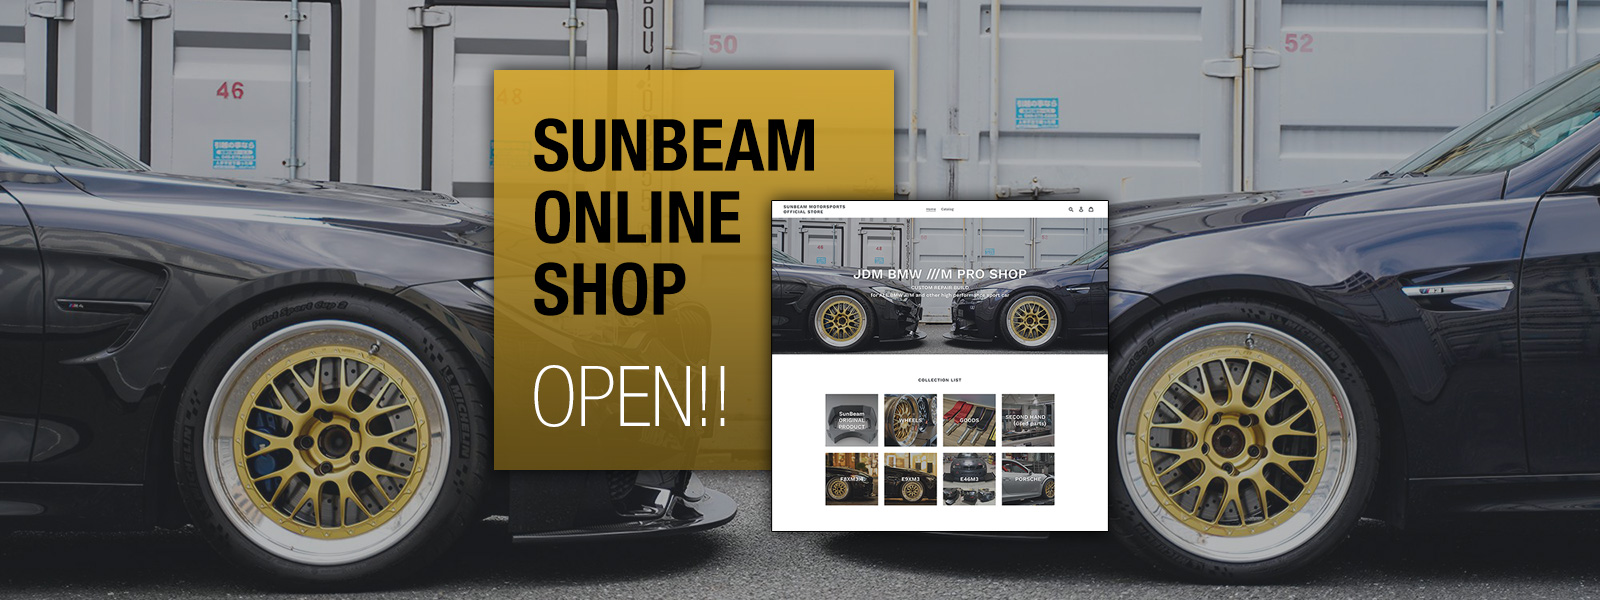 SUNBEAM ONLISHOP OPEN!